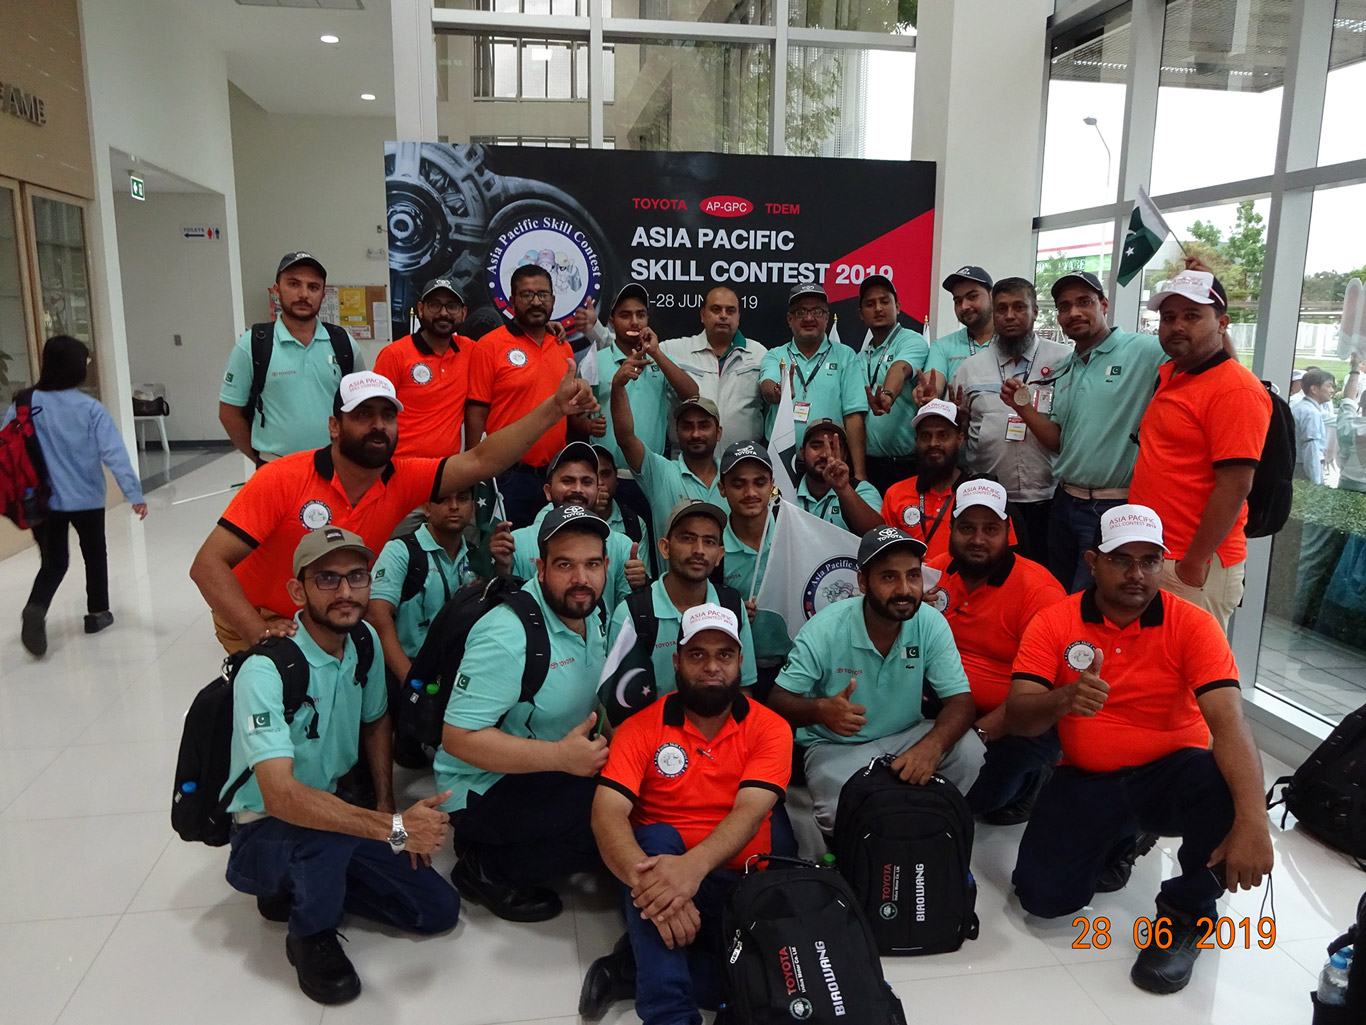 toyota asia pacific skill contest Indus Motor Company Limited